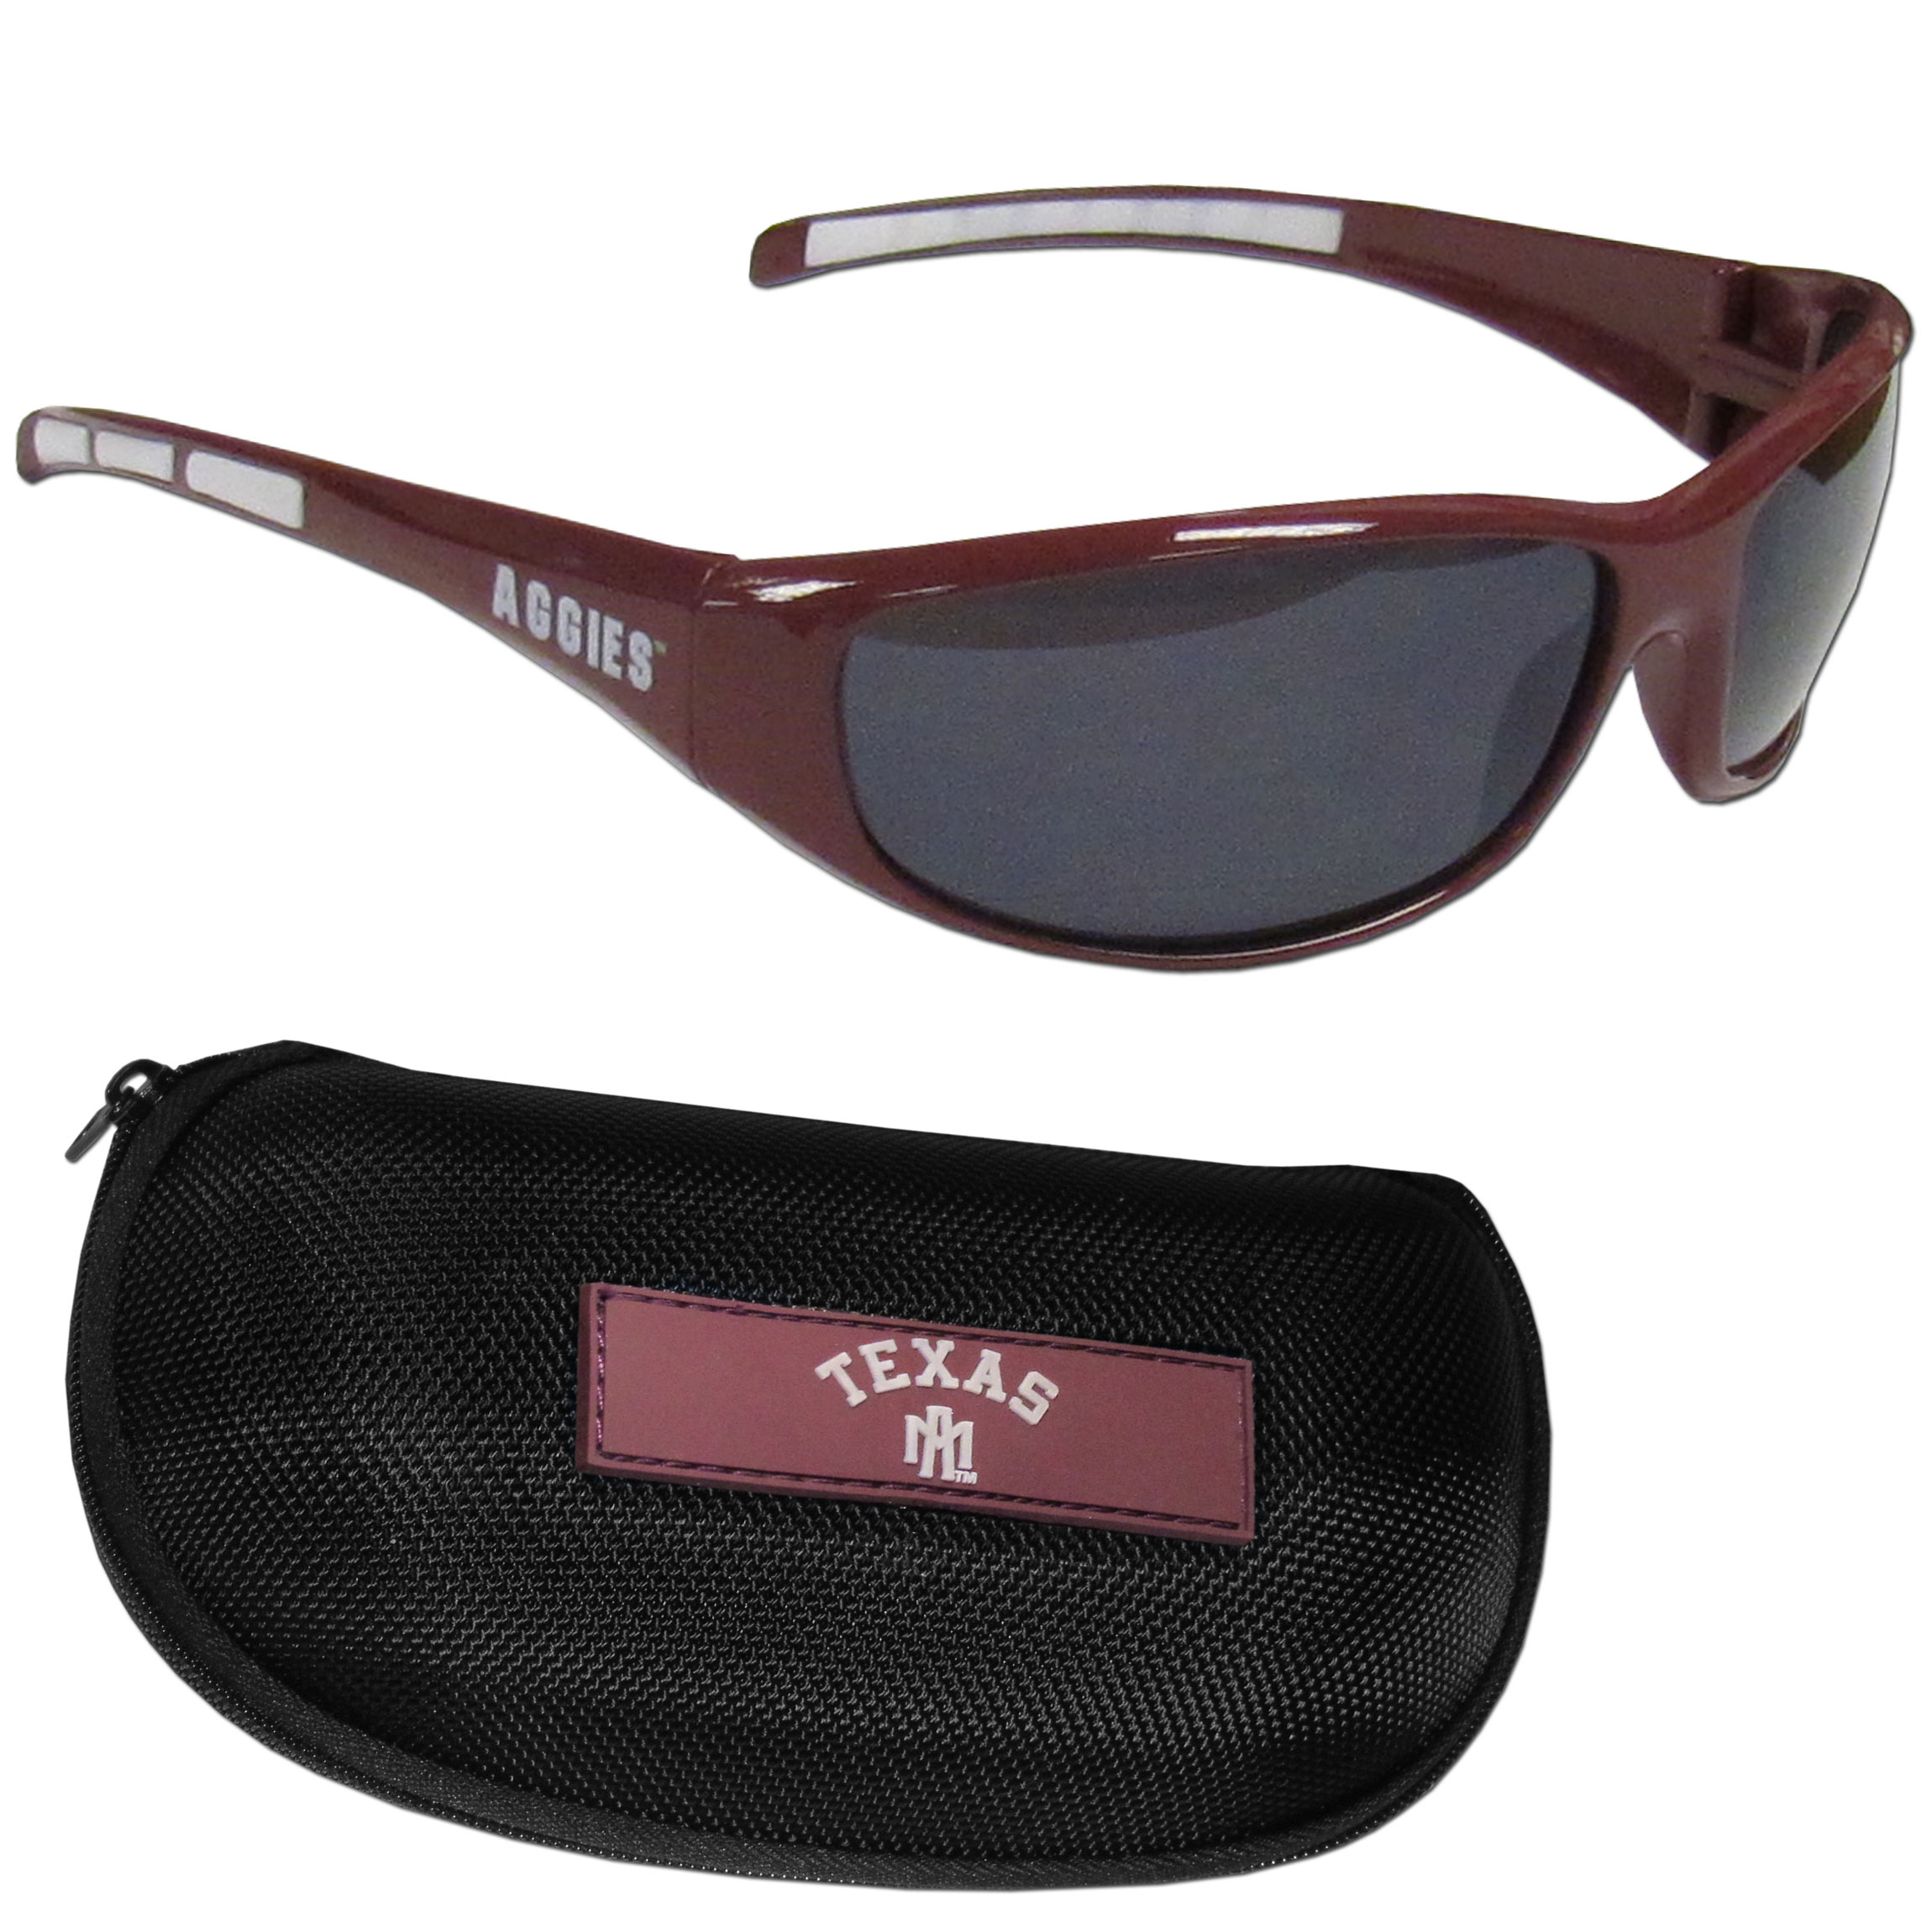 Texas A and M Aggies Wrap Sunglass and Case Set - This great set includes a high quality pair of Texas A & M Aggies wrap sunglasses and hard carrying case.